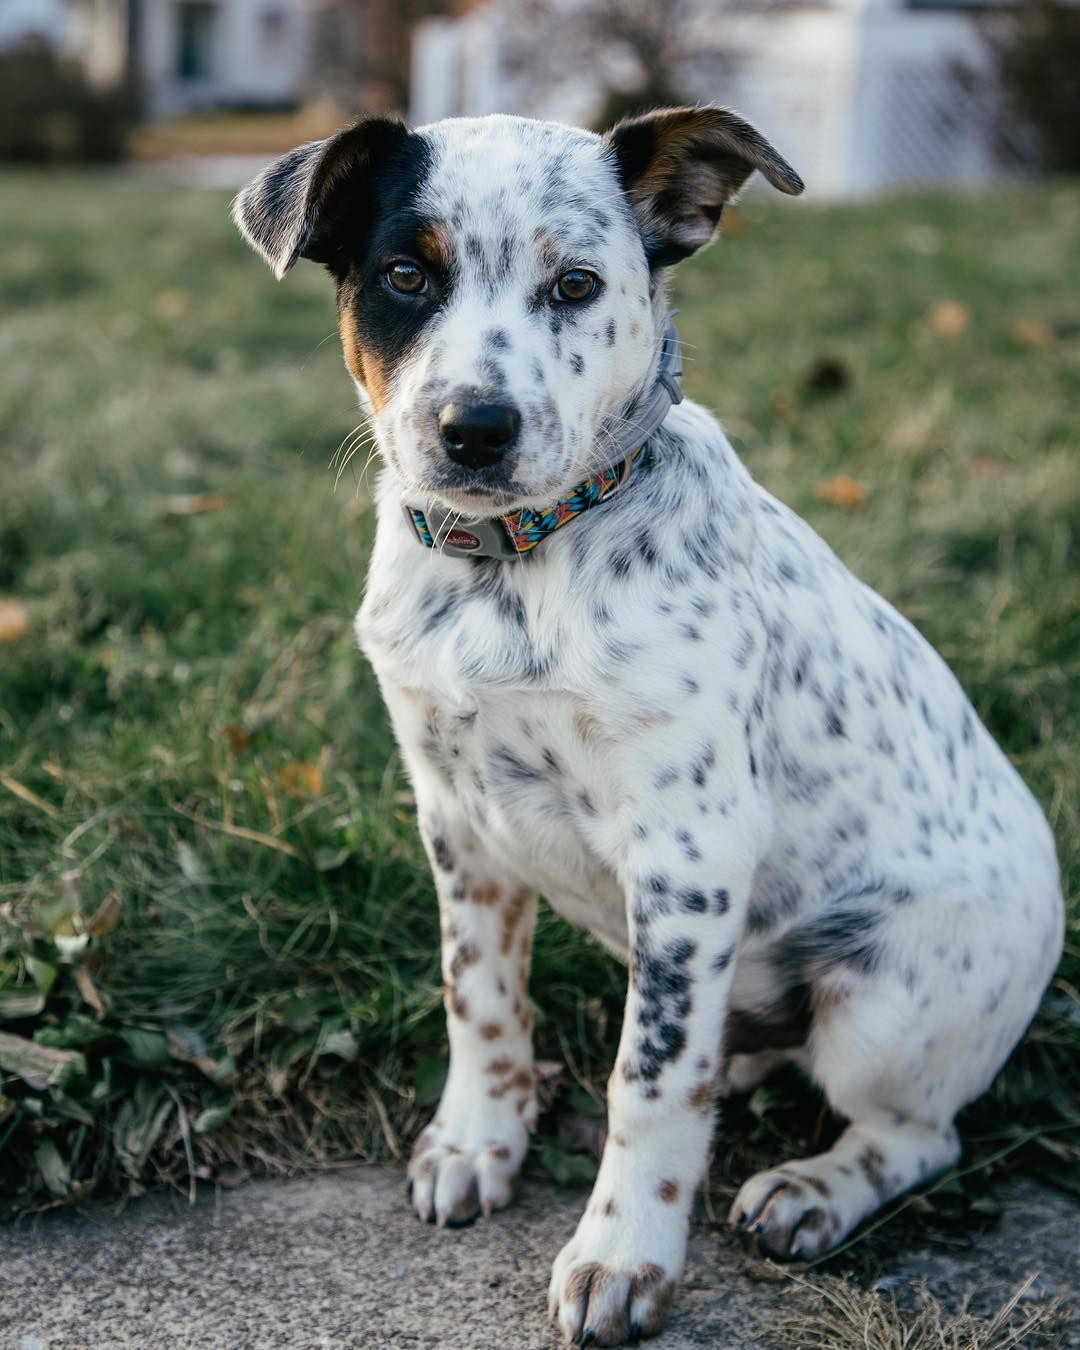 Blue The Texas Heeler (With images) Heeler puppies, Heeler